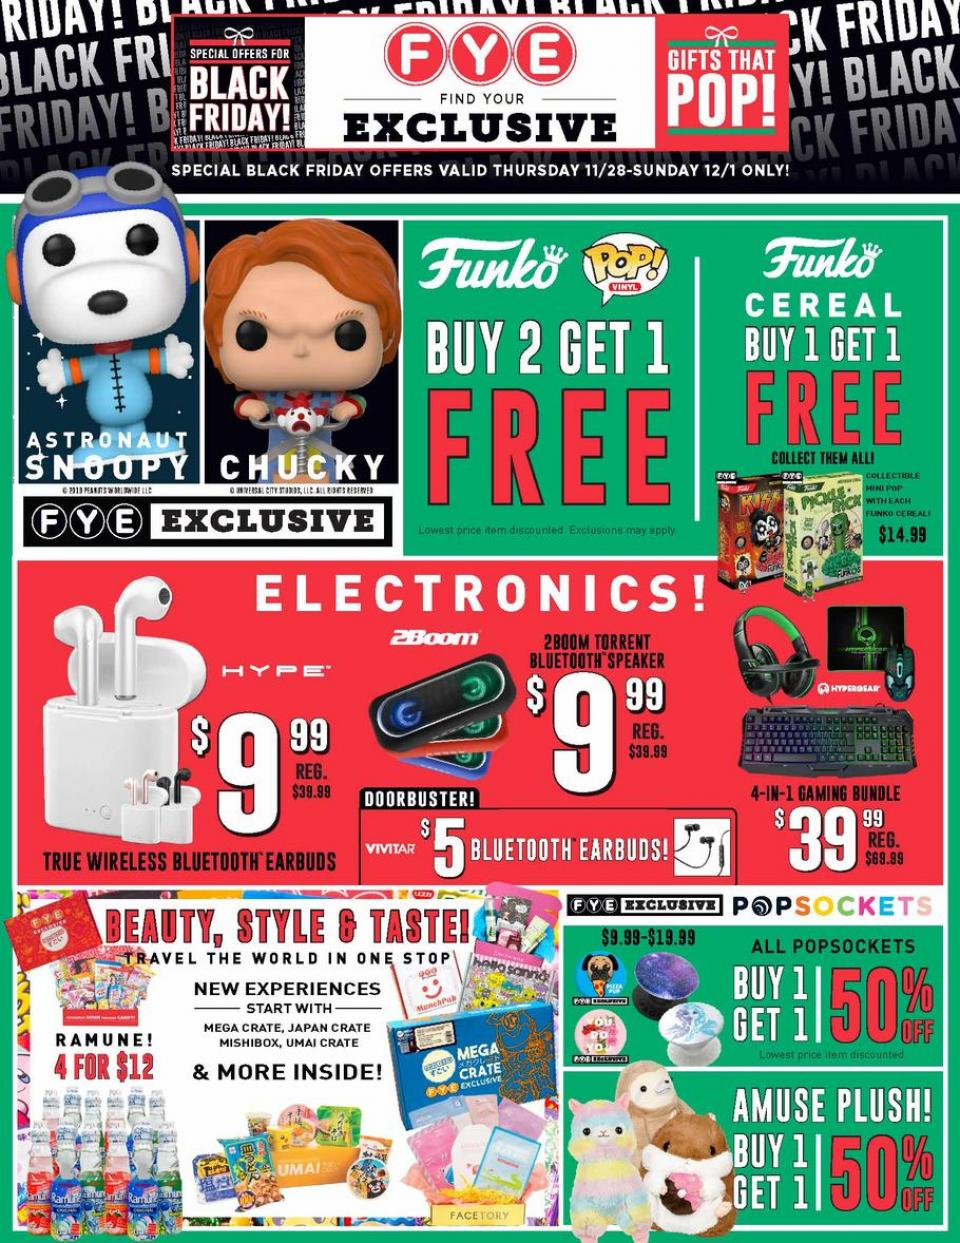 Fye black friday ad